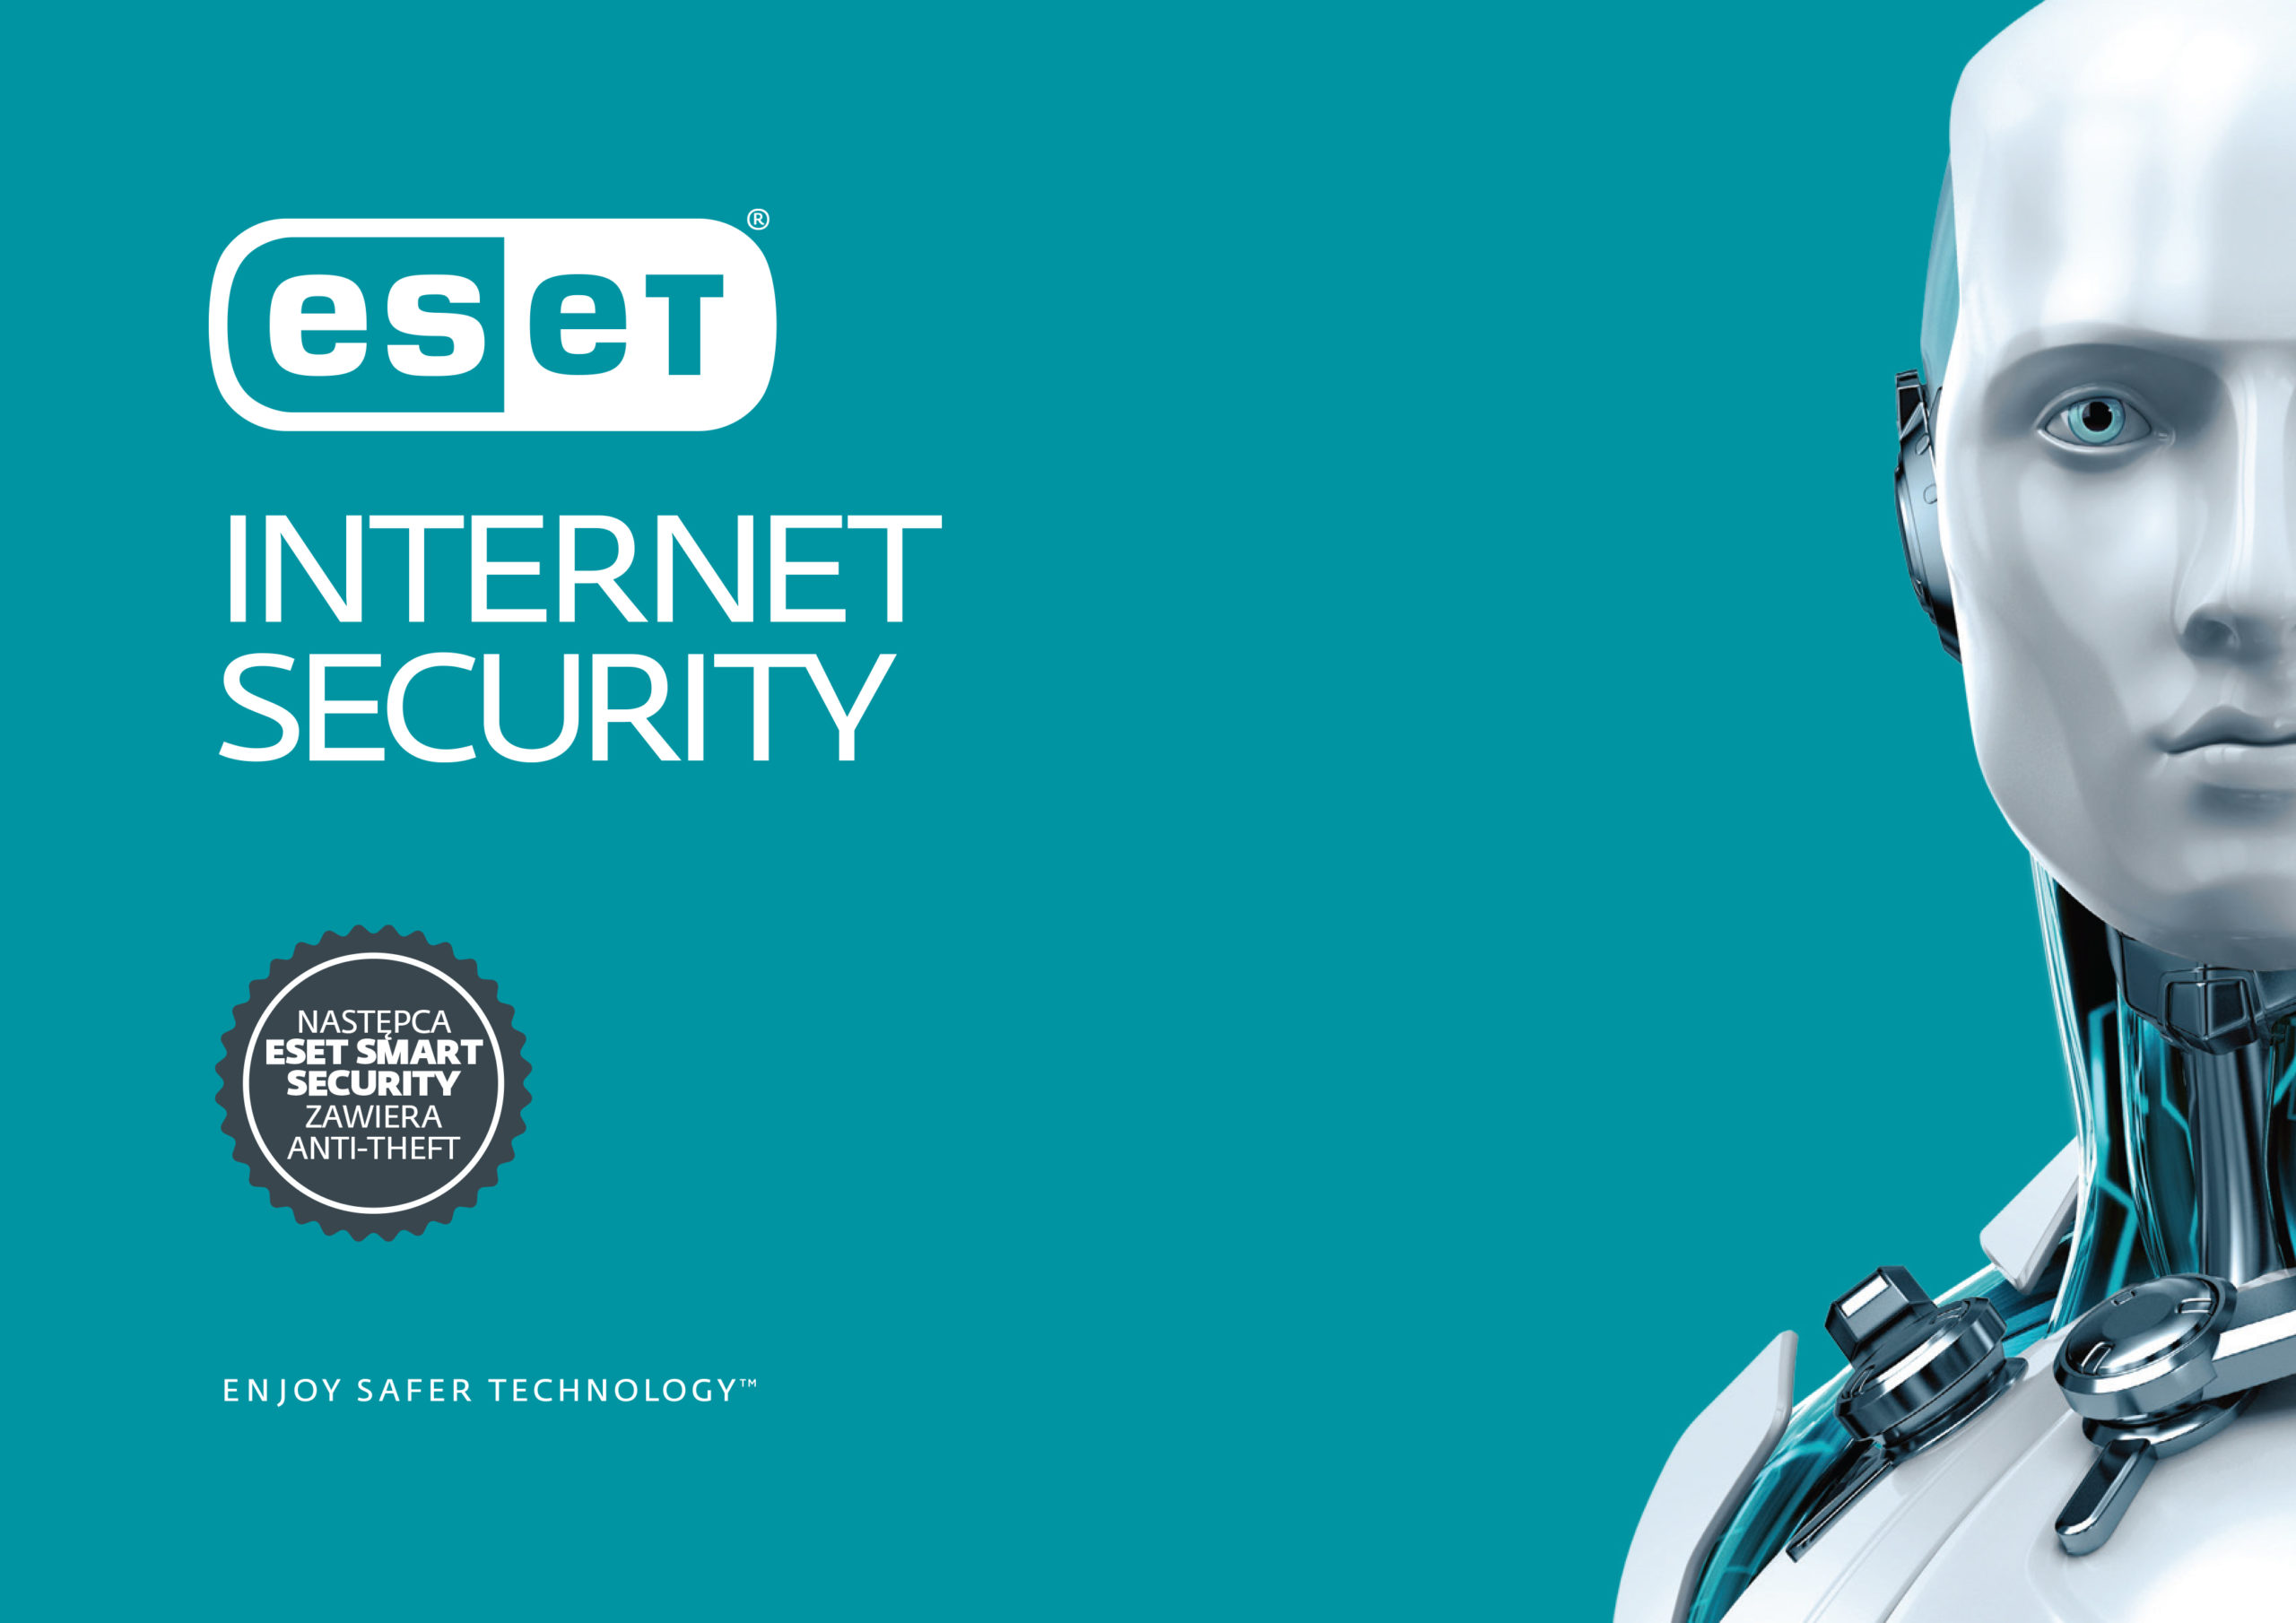 ESET-Internet-Security